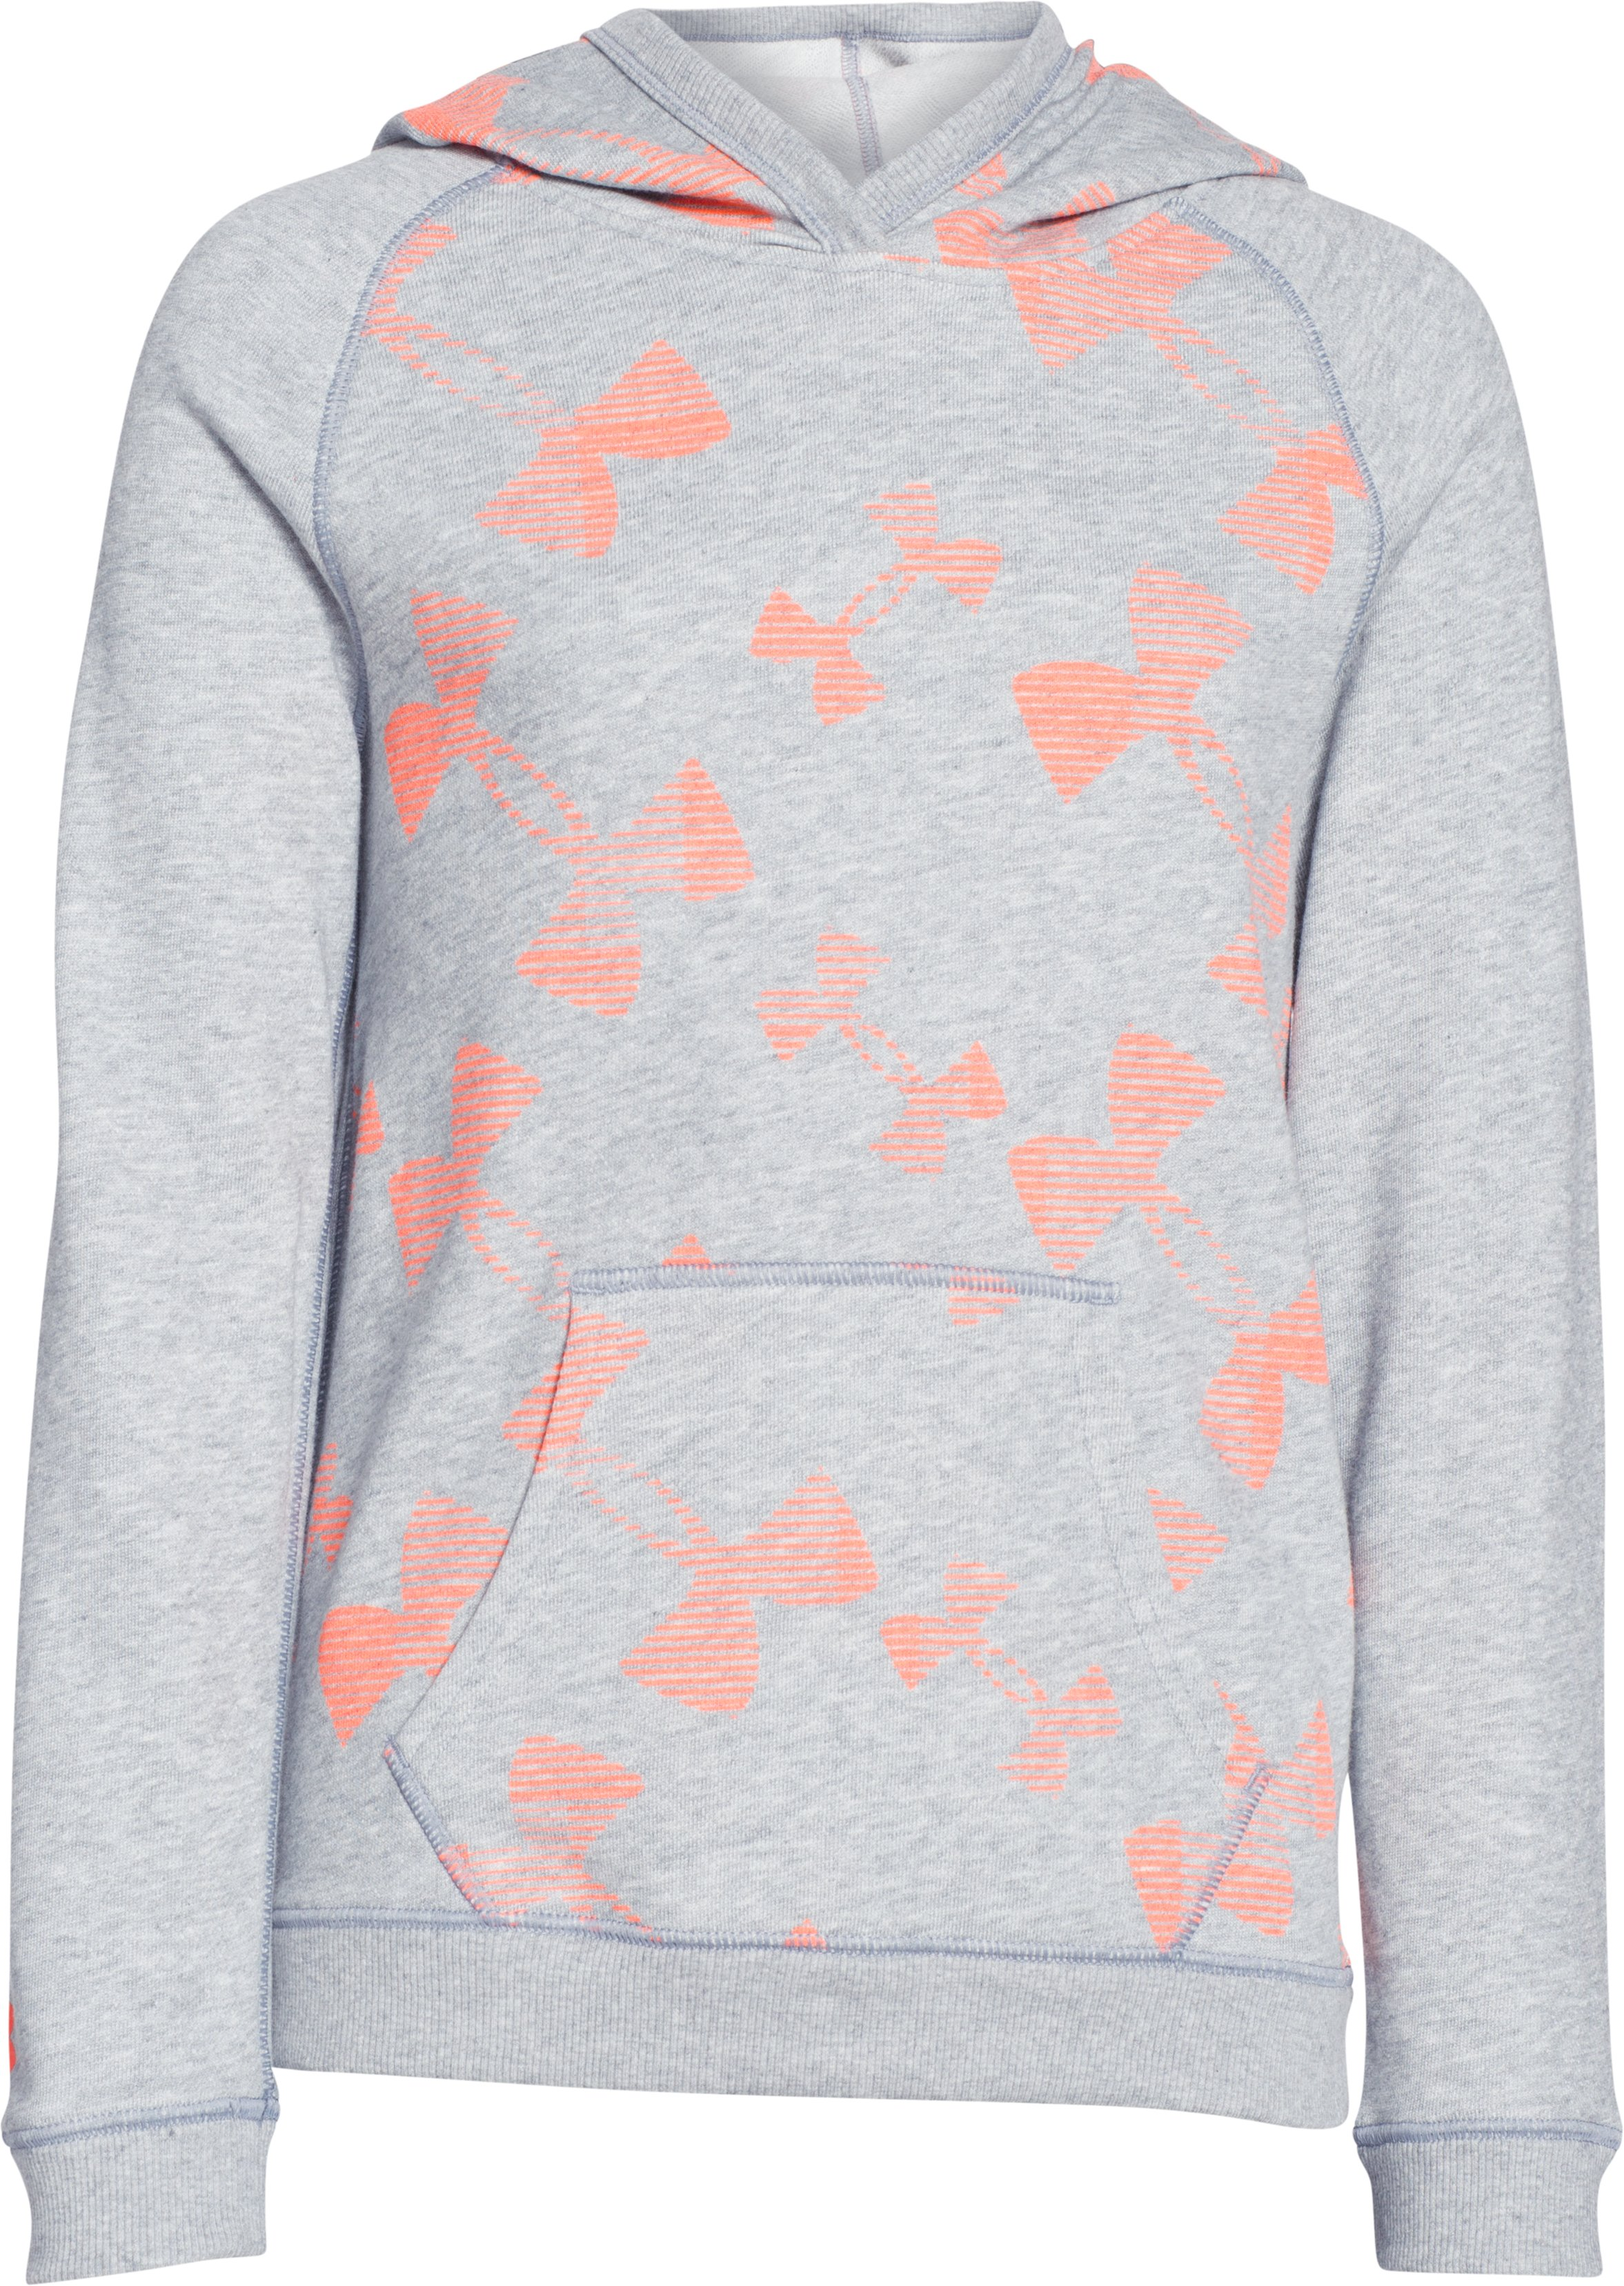 Girls' UA Kaleidalogo Hoodie, True Gray Heather, zoomed image